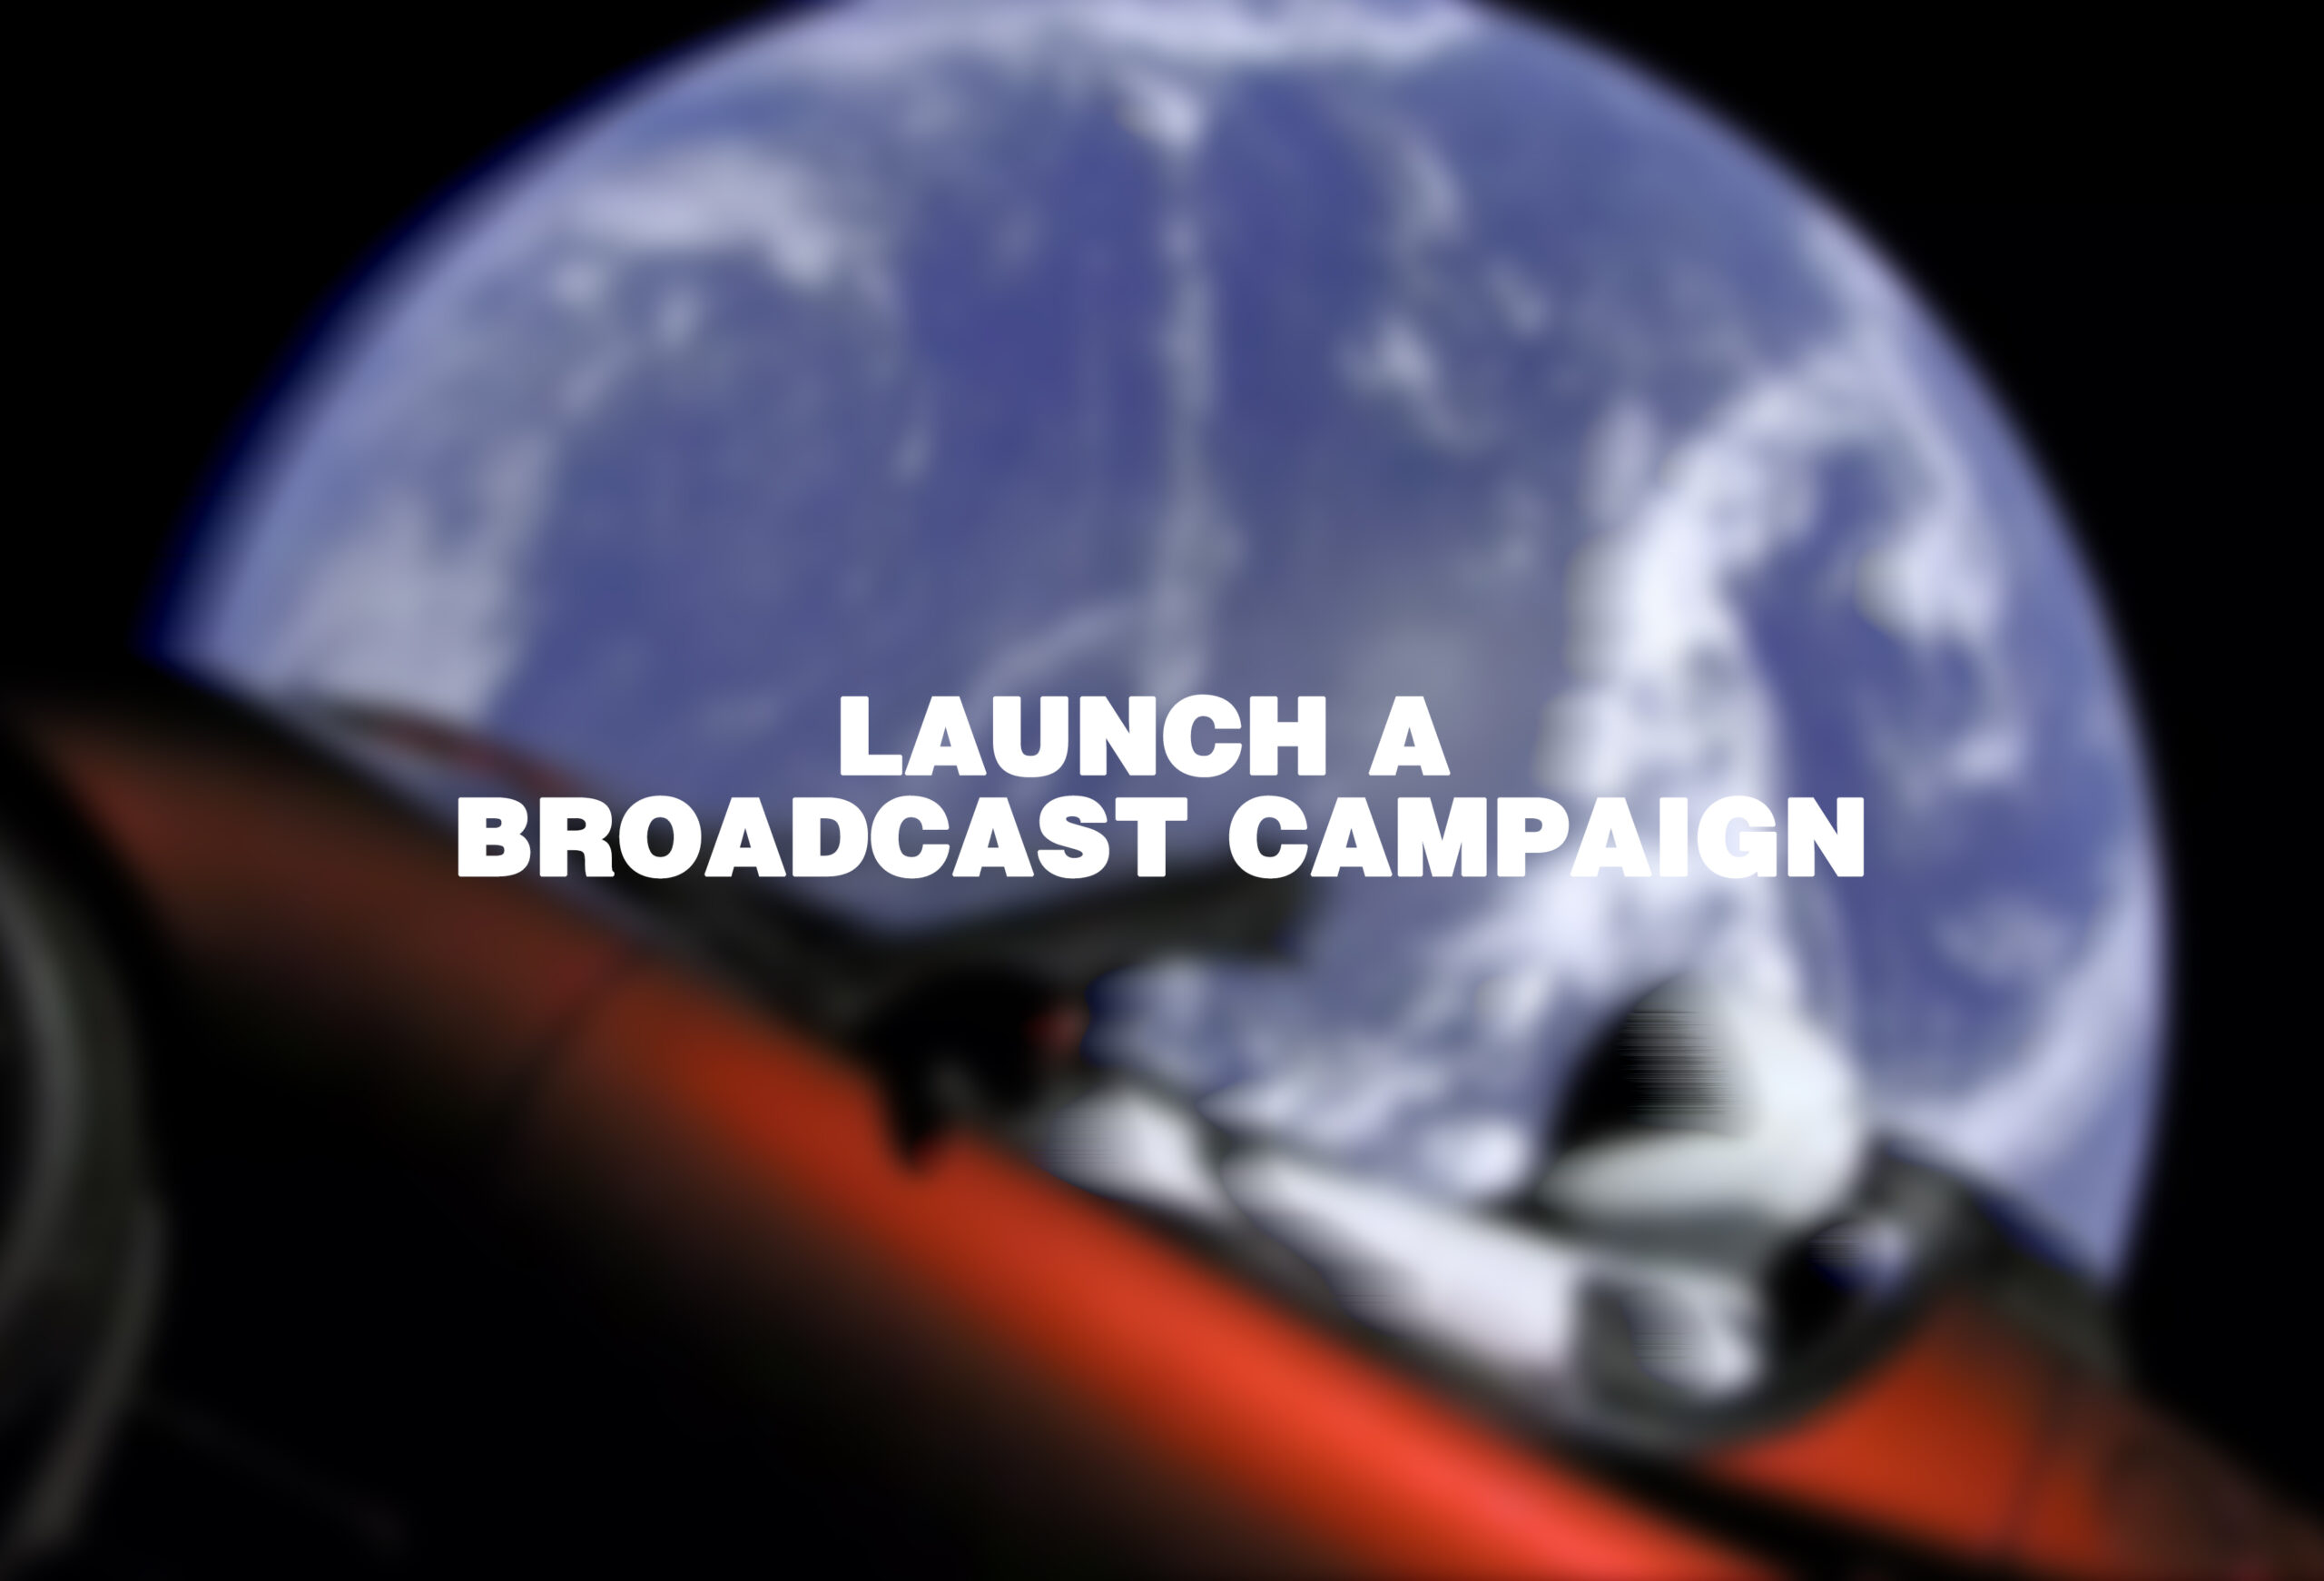 Launch a Broadcast Campaign